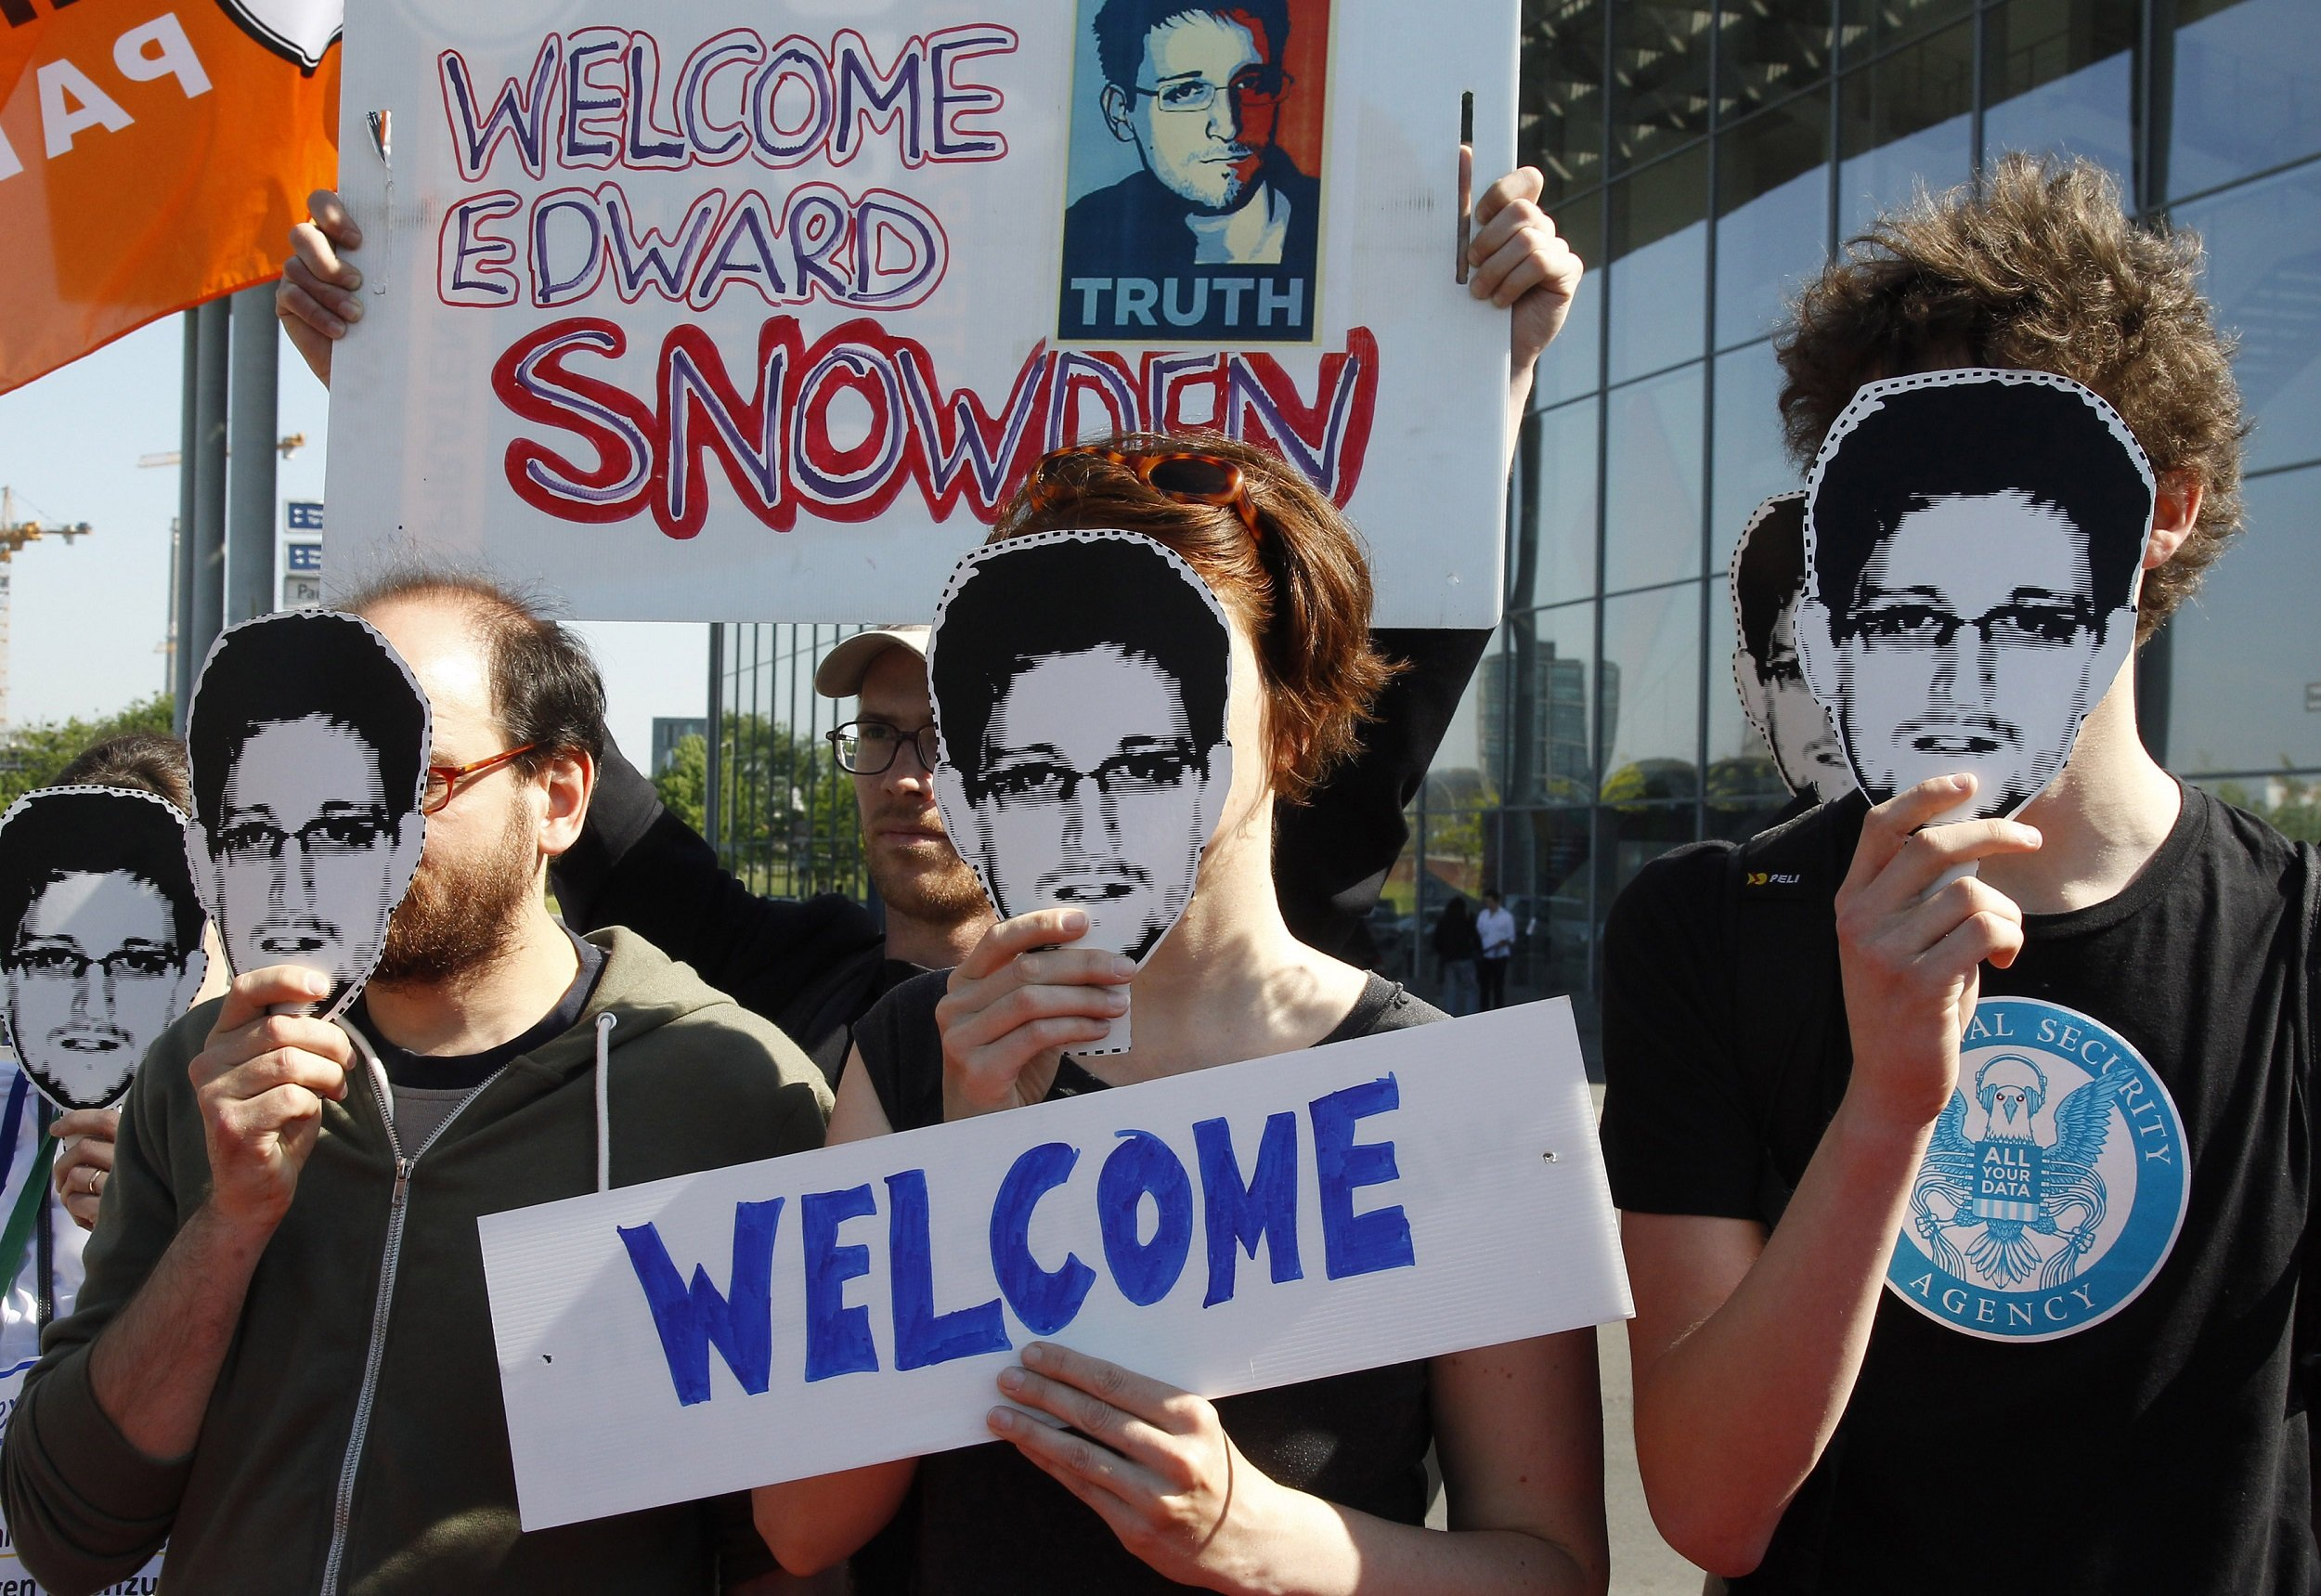 Edward Snowden switzerland